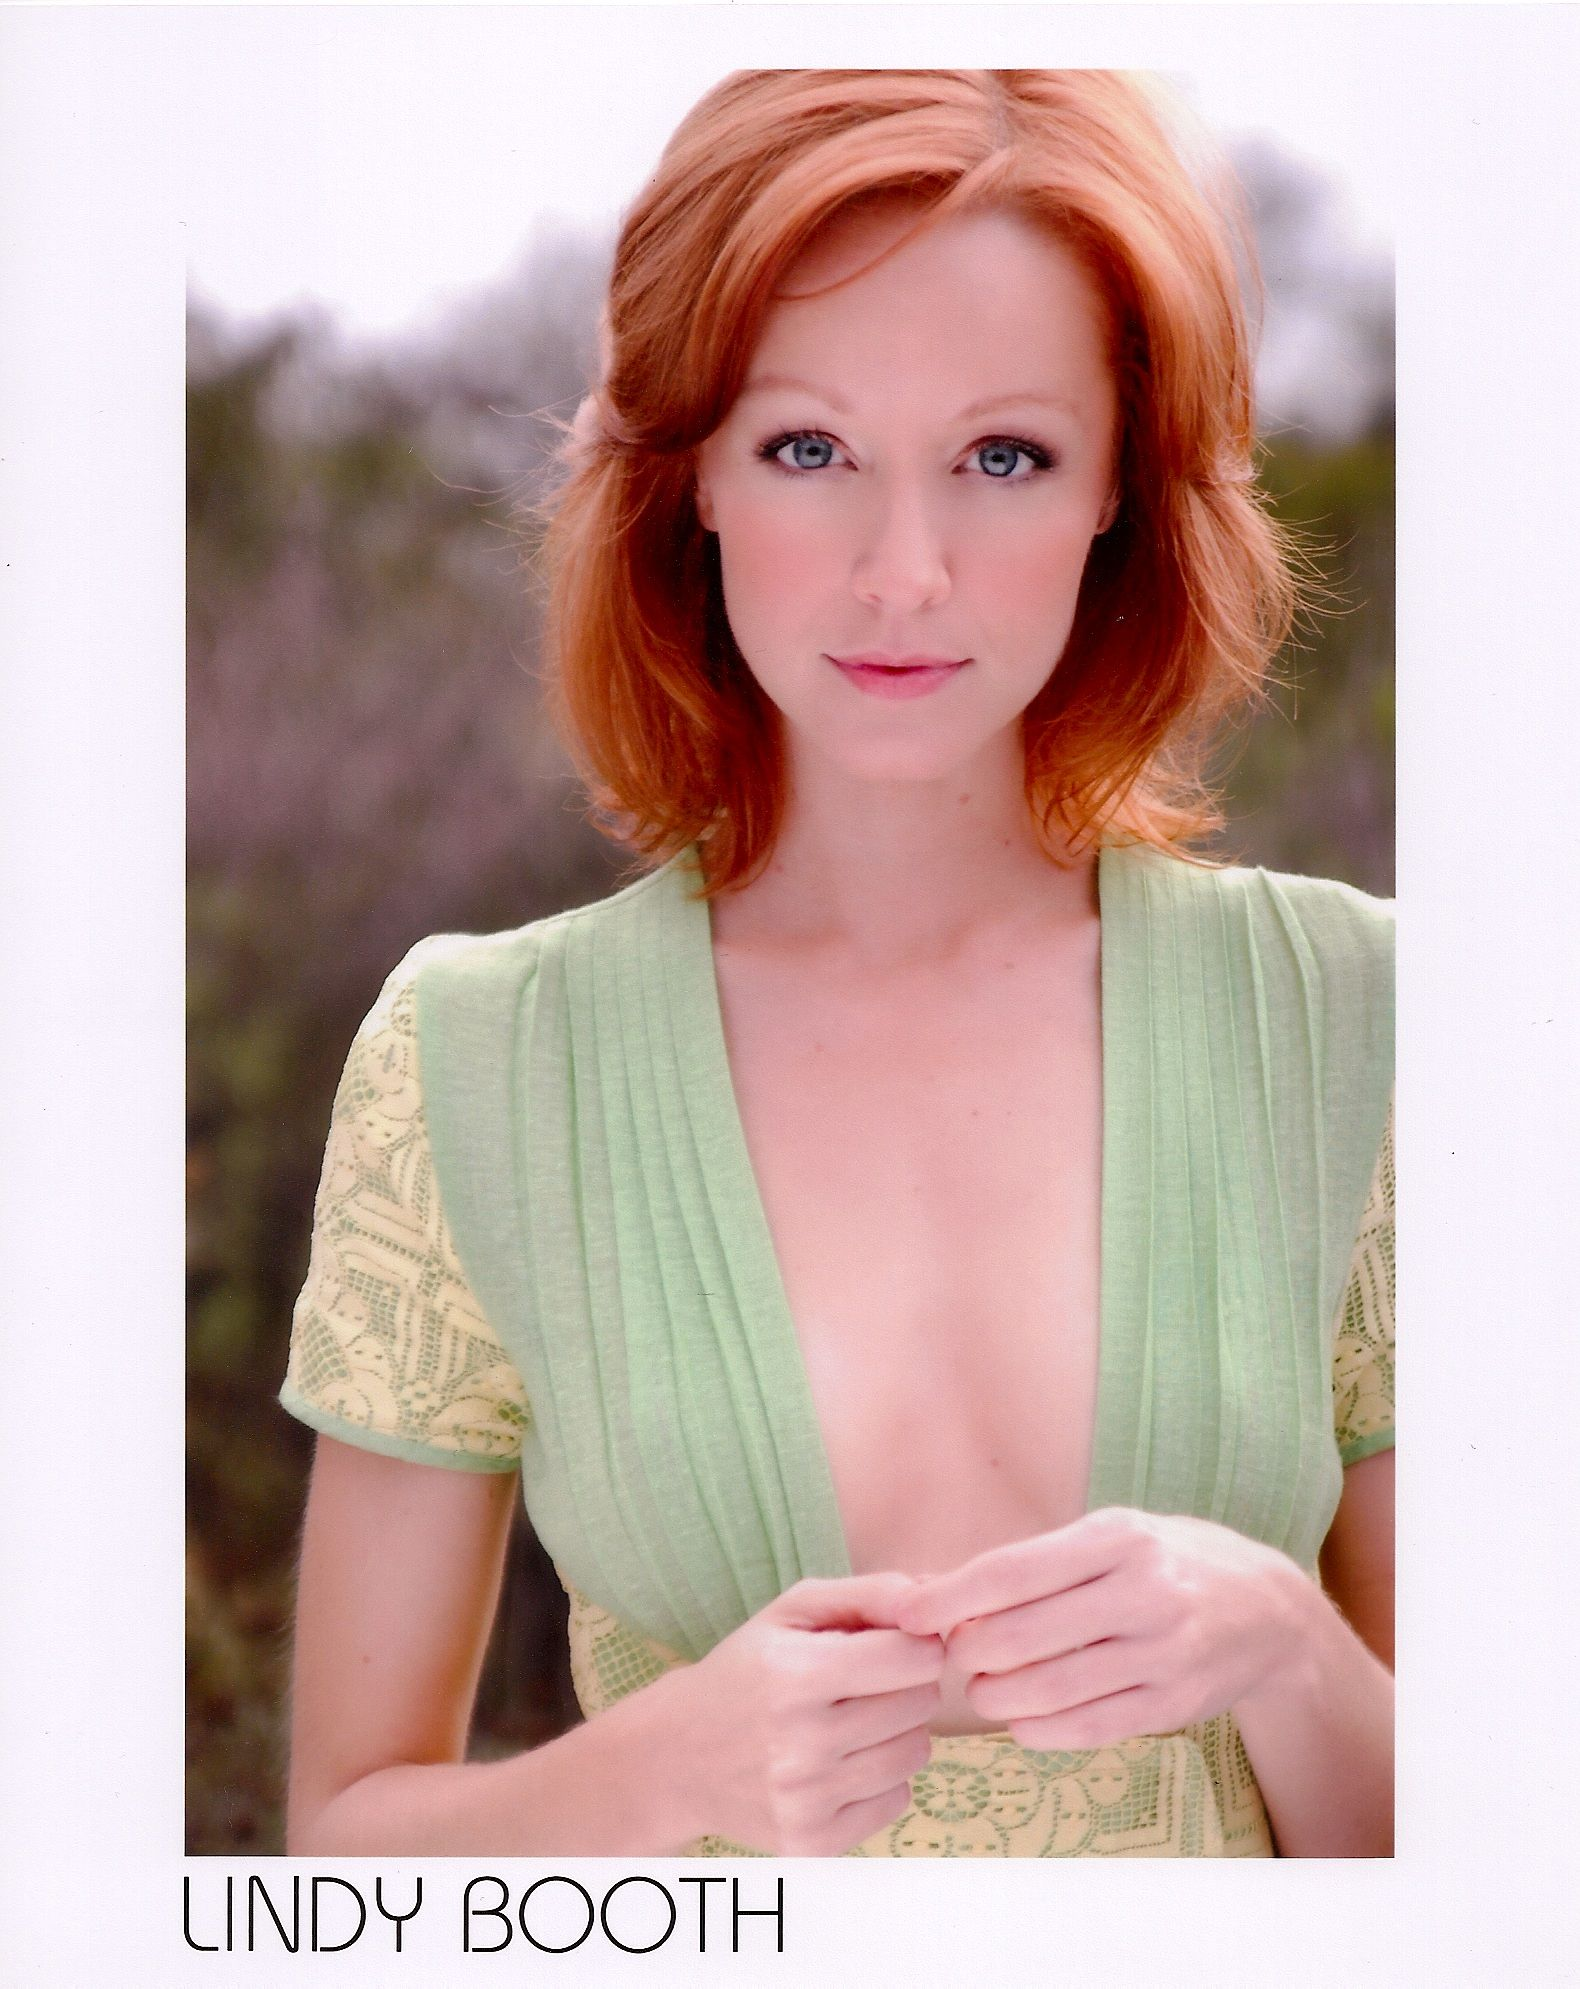 Lindy Booth ---- Born: April 2, 1979 in Oakville, Ontario